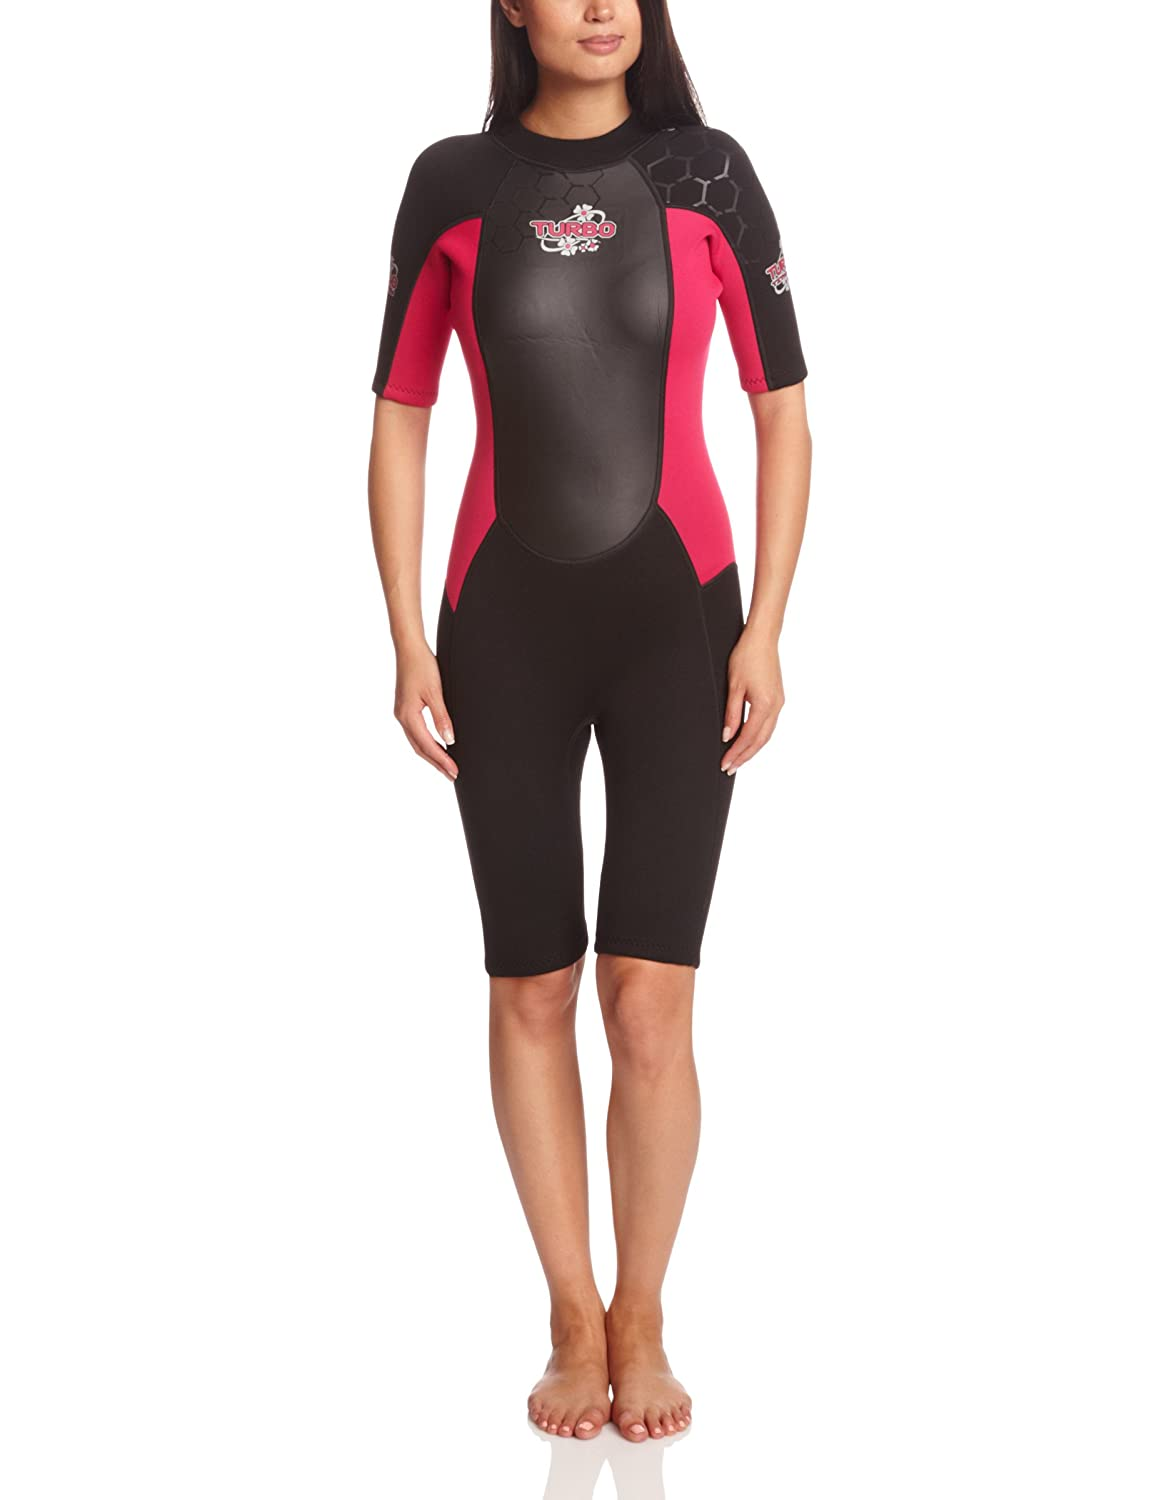 f398df6d41 Top 10 Best Surfing Wetsuits for Women Buying Guide 2019-2020 on ...